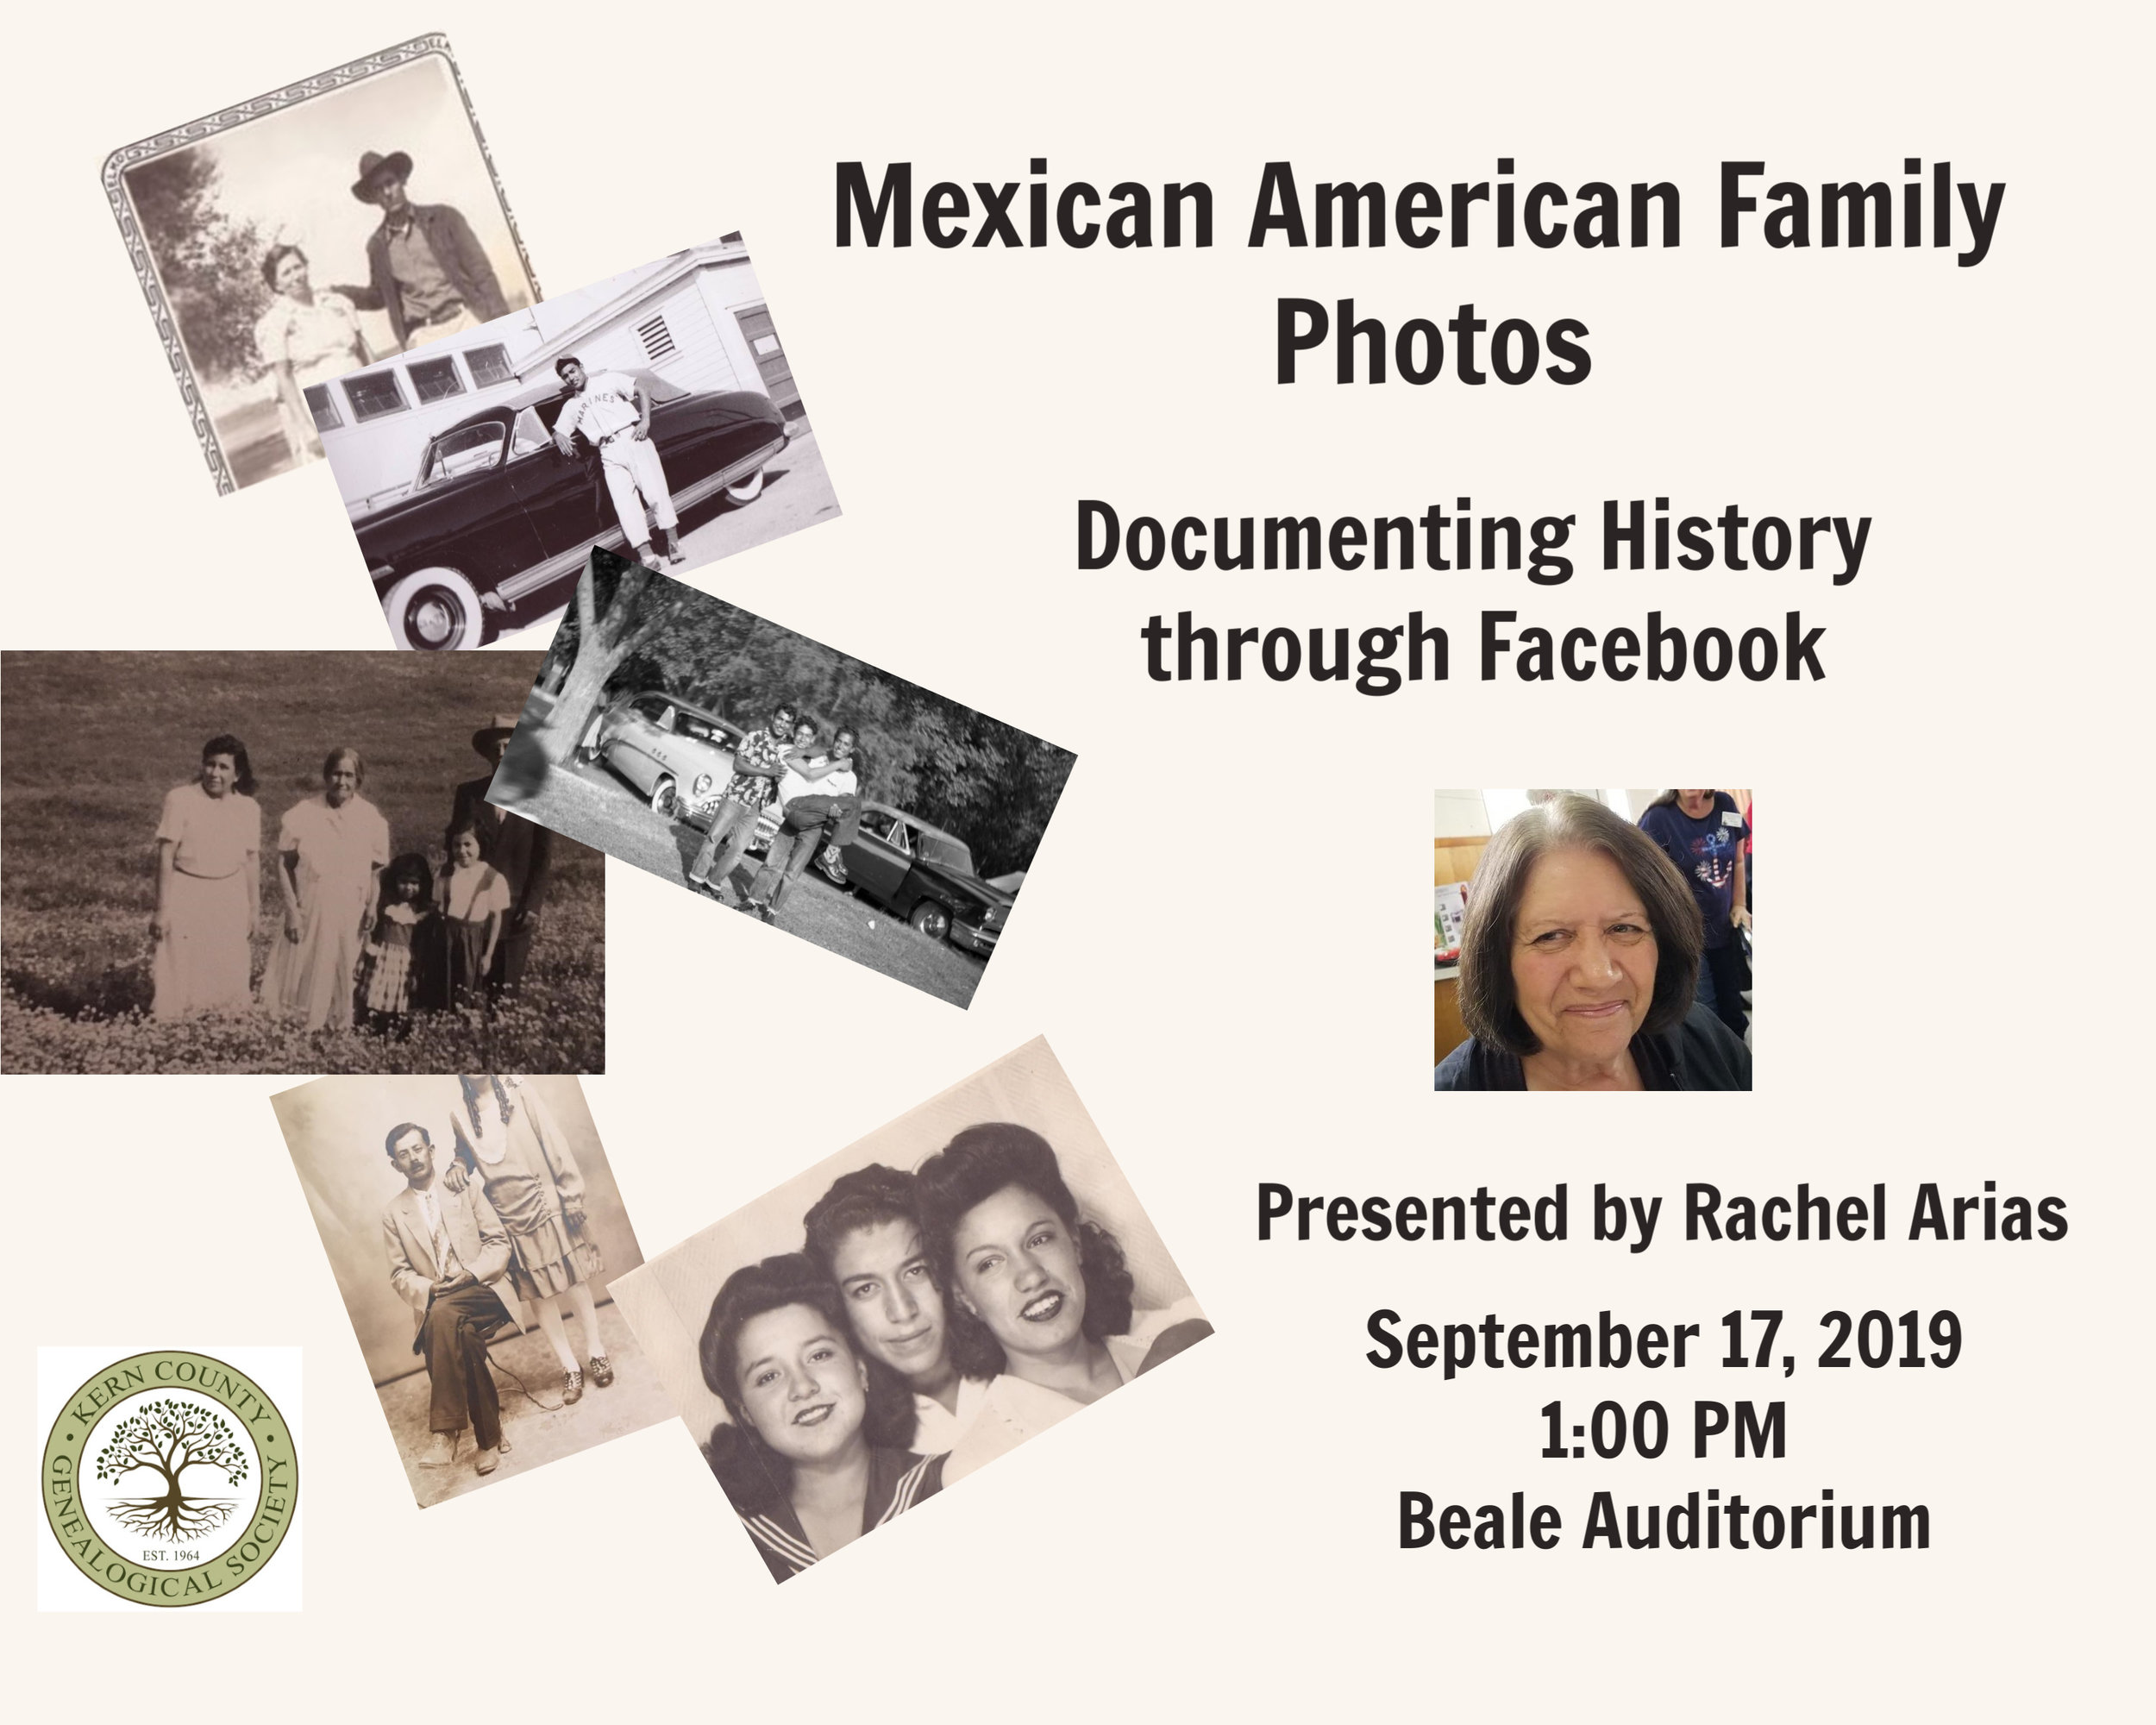 09-17-19 Mexican American Photos.jpg